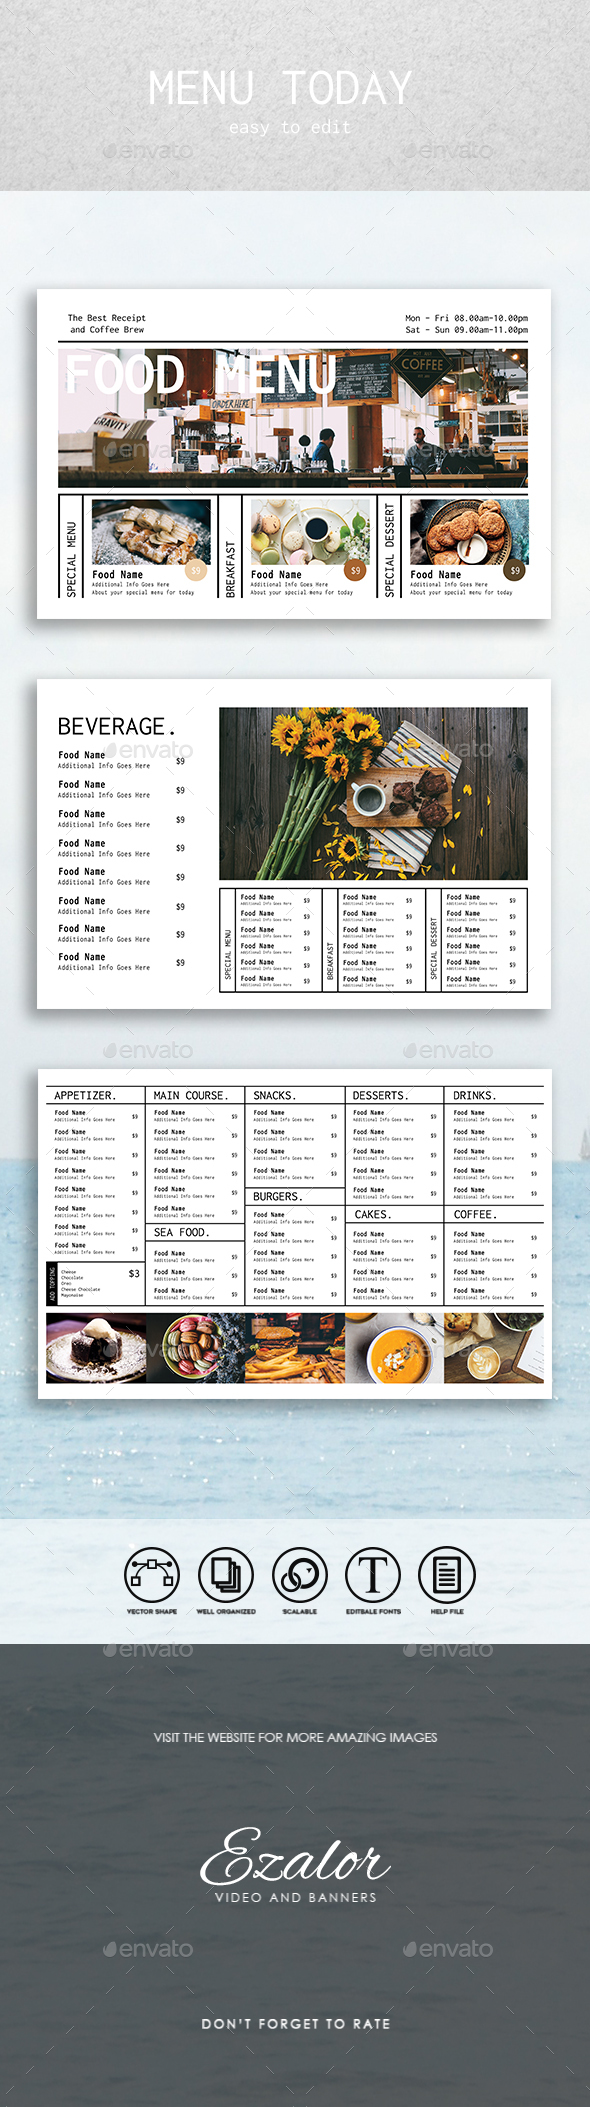 Menu Today - Food Menus Print Templates